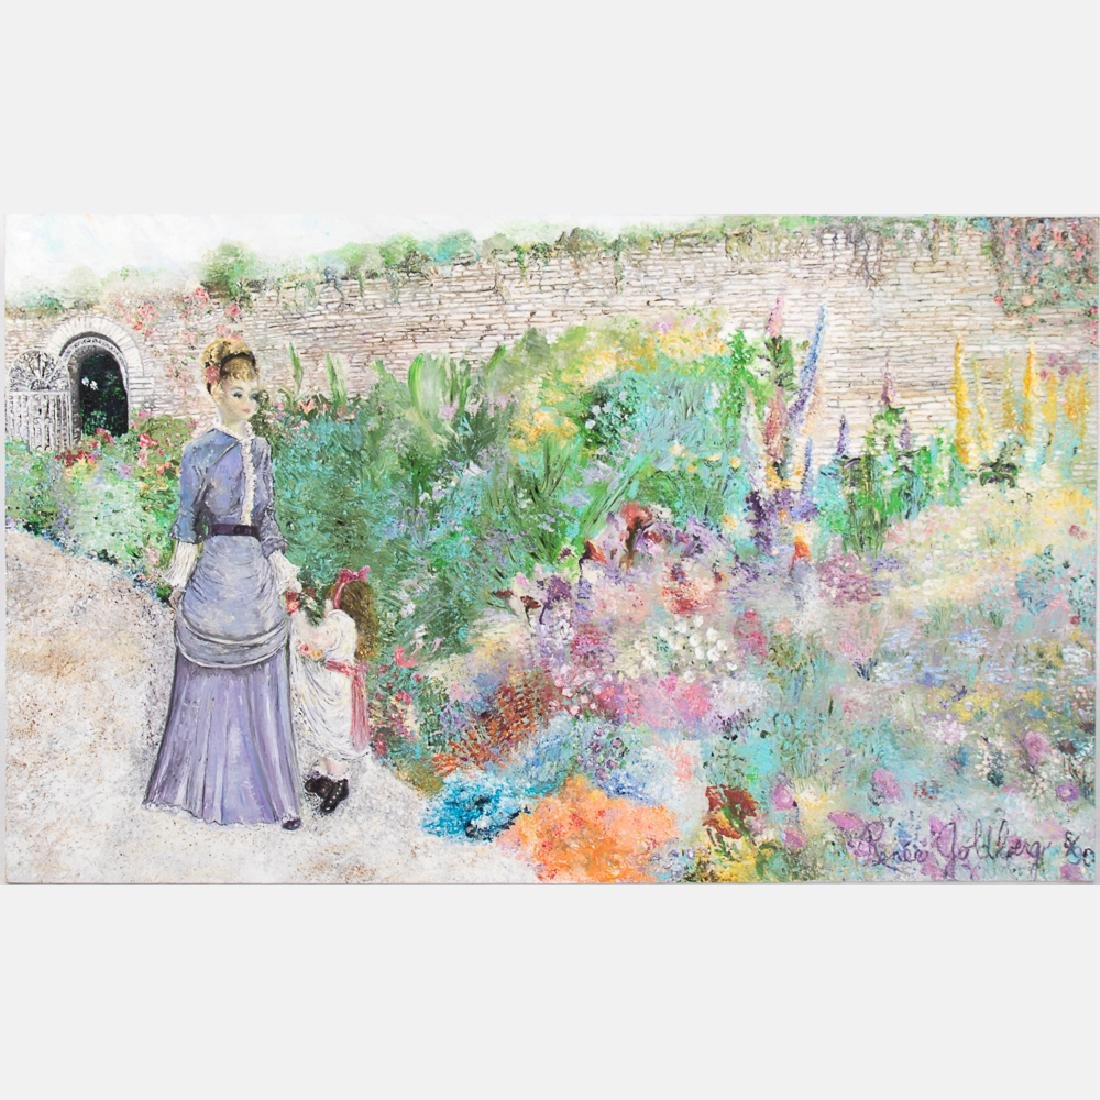 Renee Goldberg (20th Century) Figure in a Garden, Oil